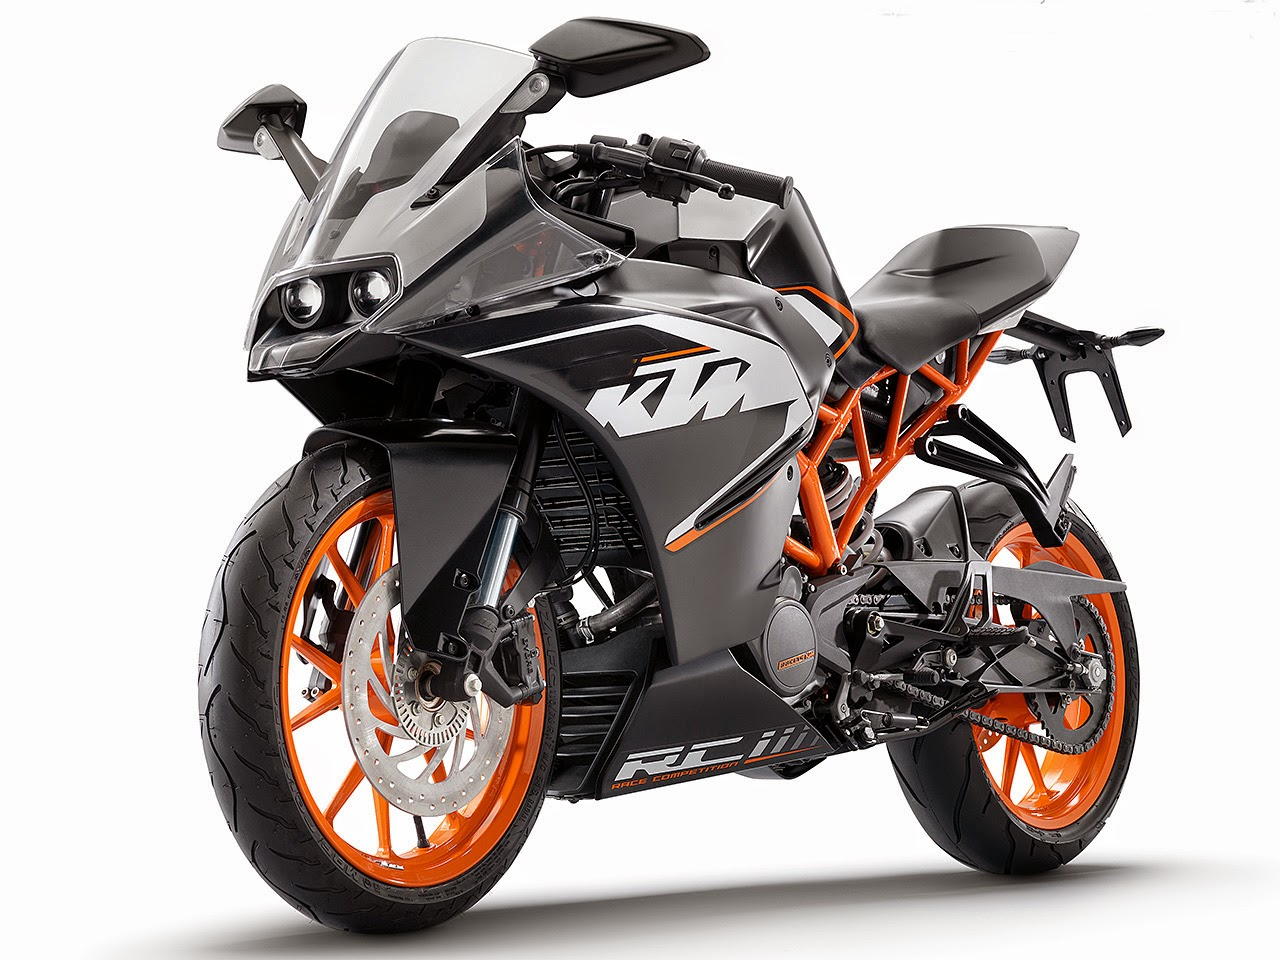 watch out ktm rc390 motorbike ready to launch bike car art photos images wallpapers pics. Black Bedroom Furniture Sets. Home Design Ideas